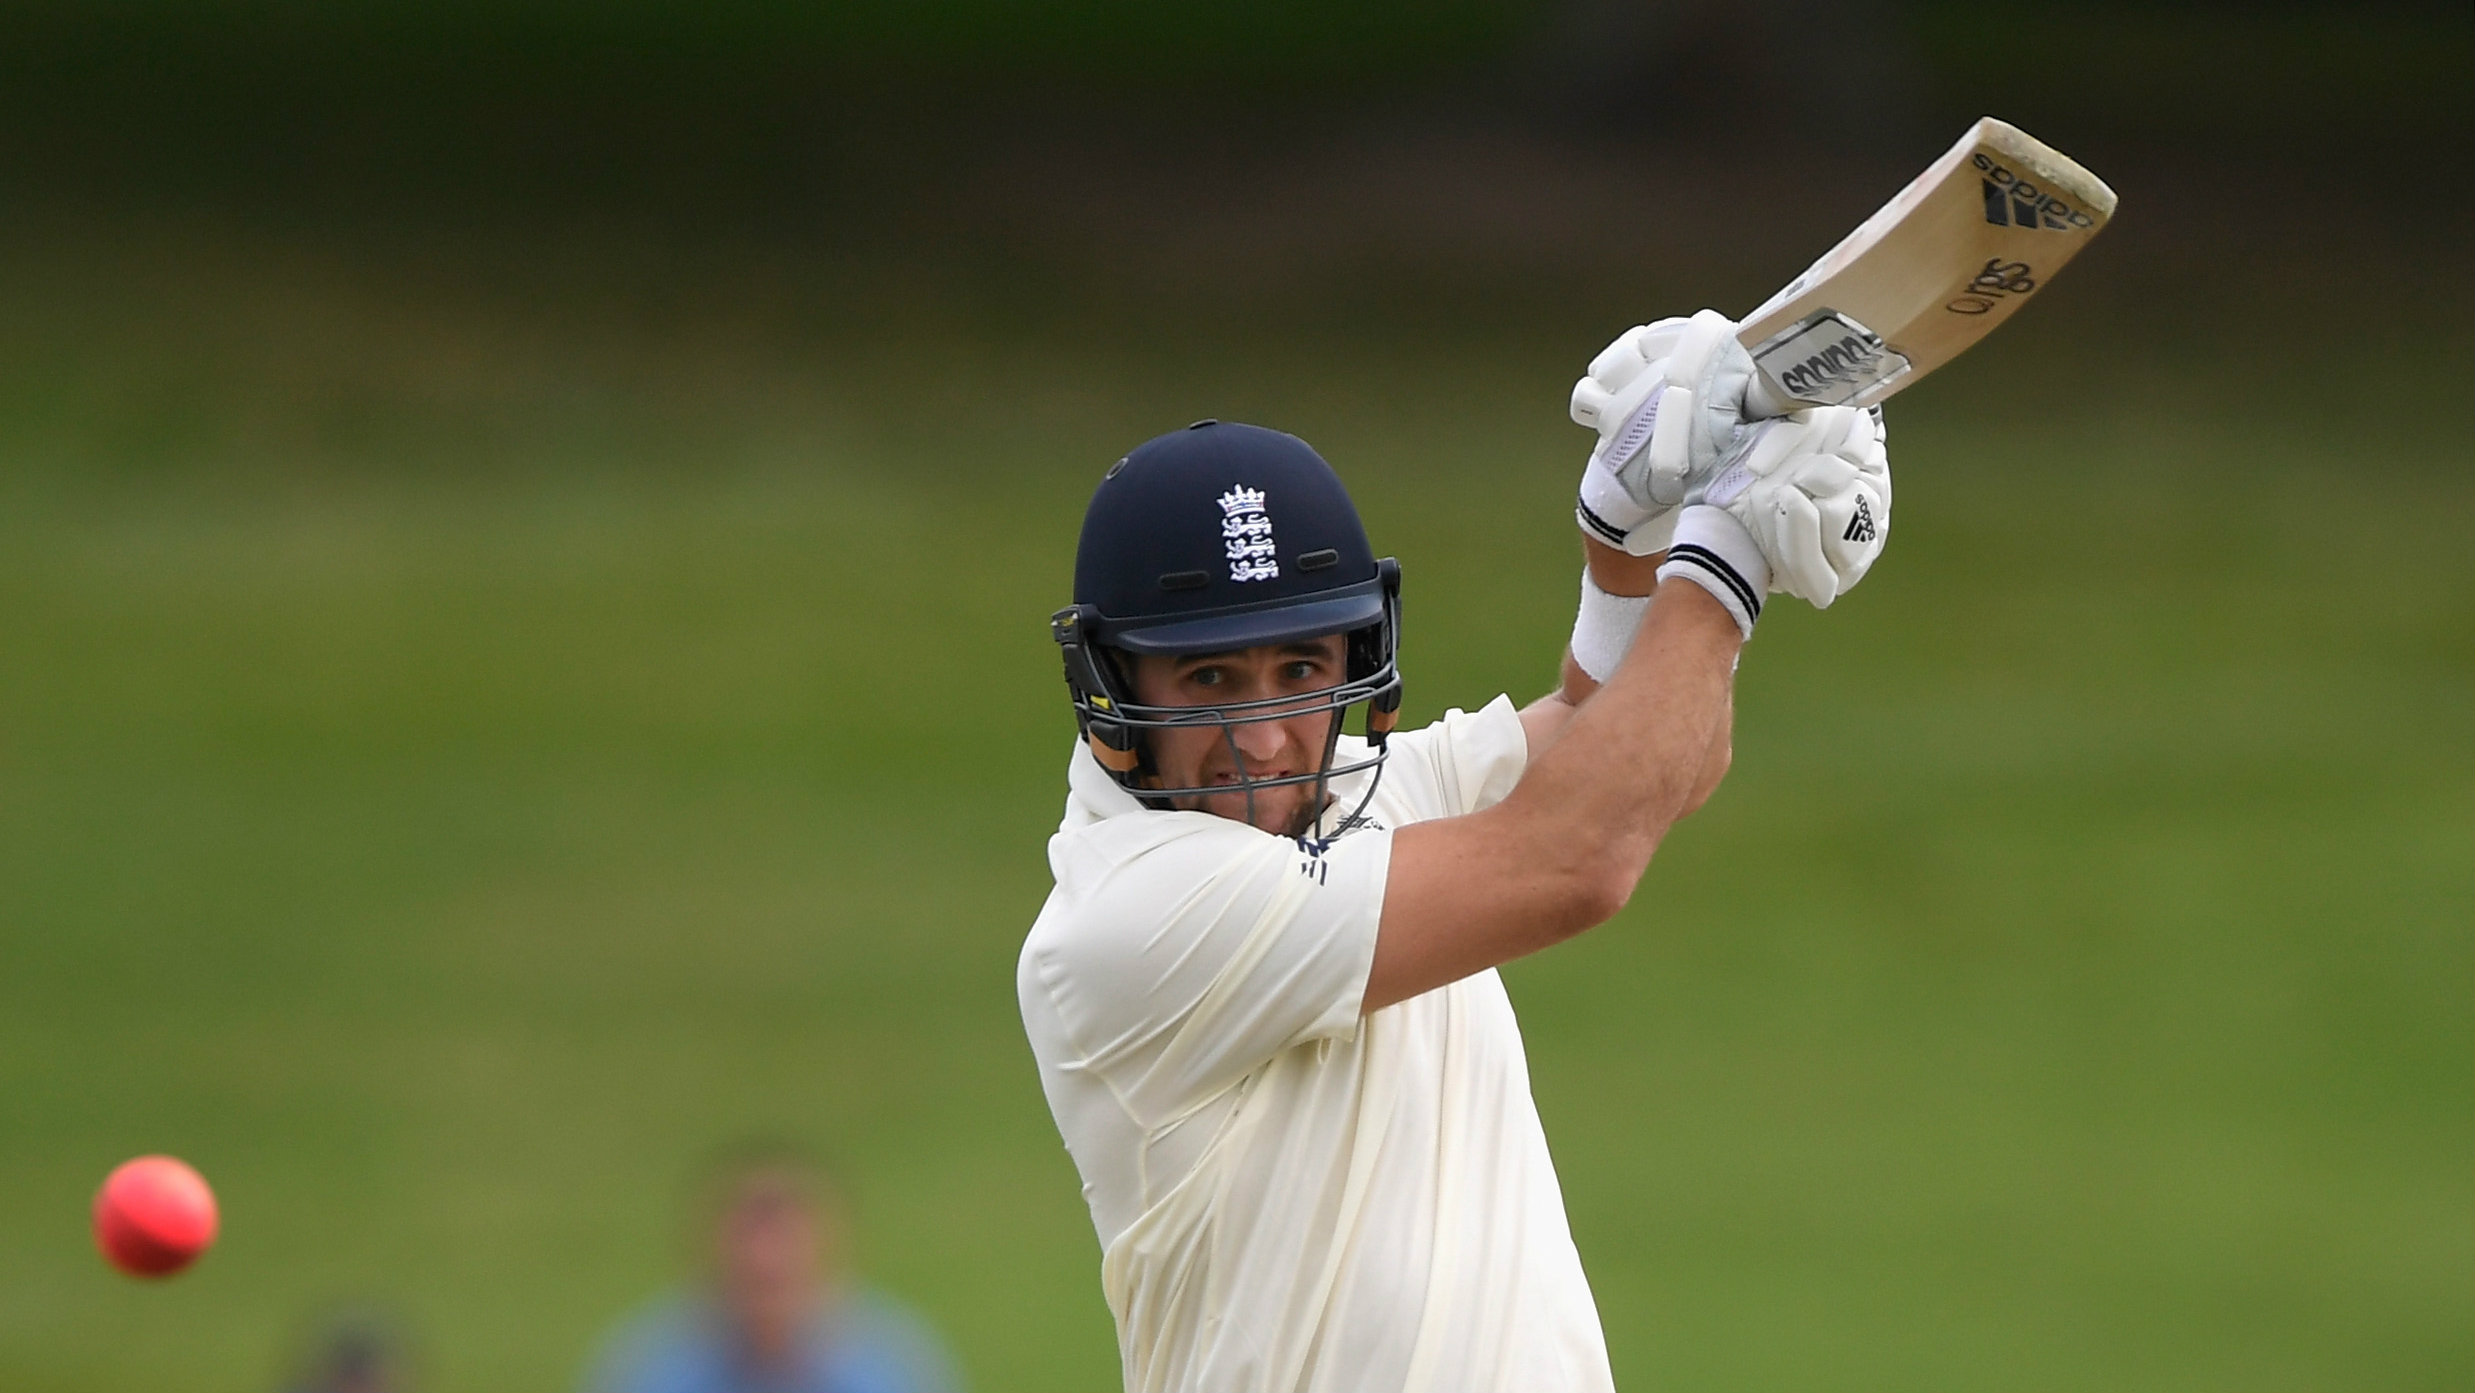 <em>The likes of Liam Livingstone might want to use the start of the County season well to improve their chances before the next Test </em>